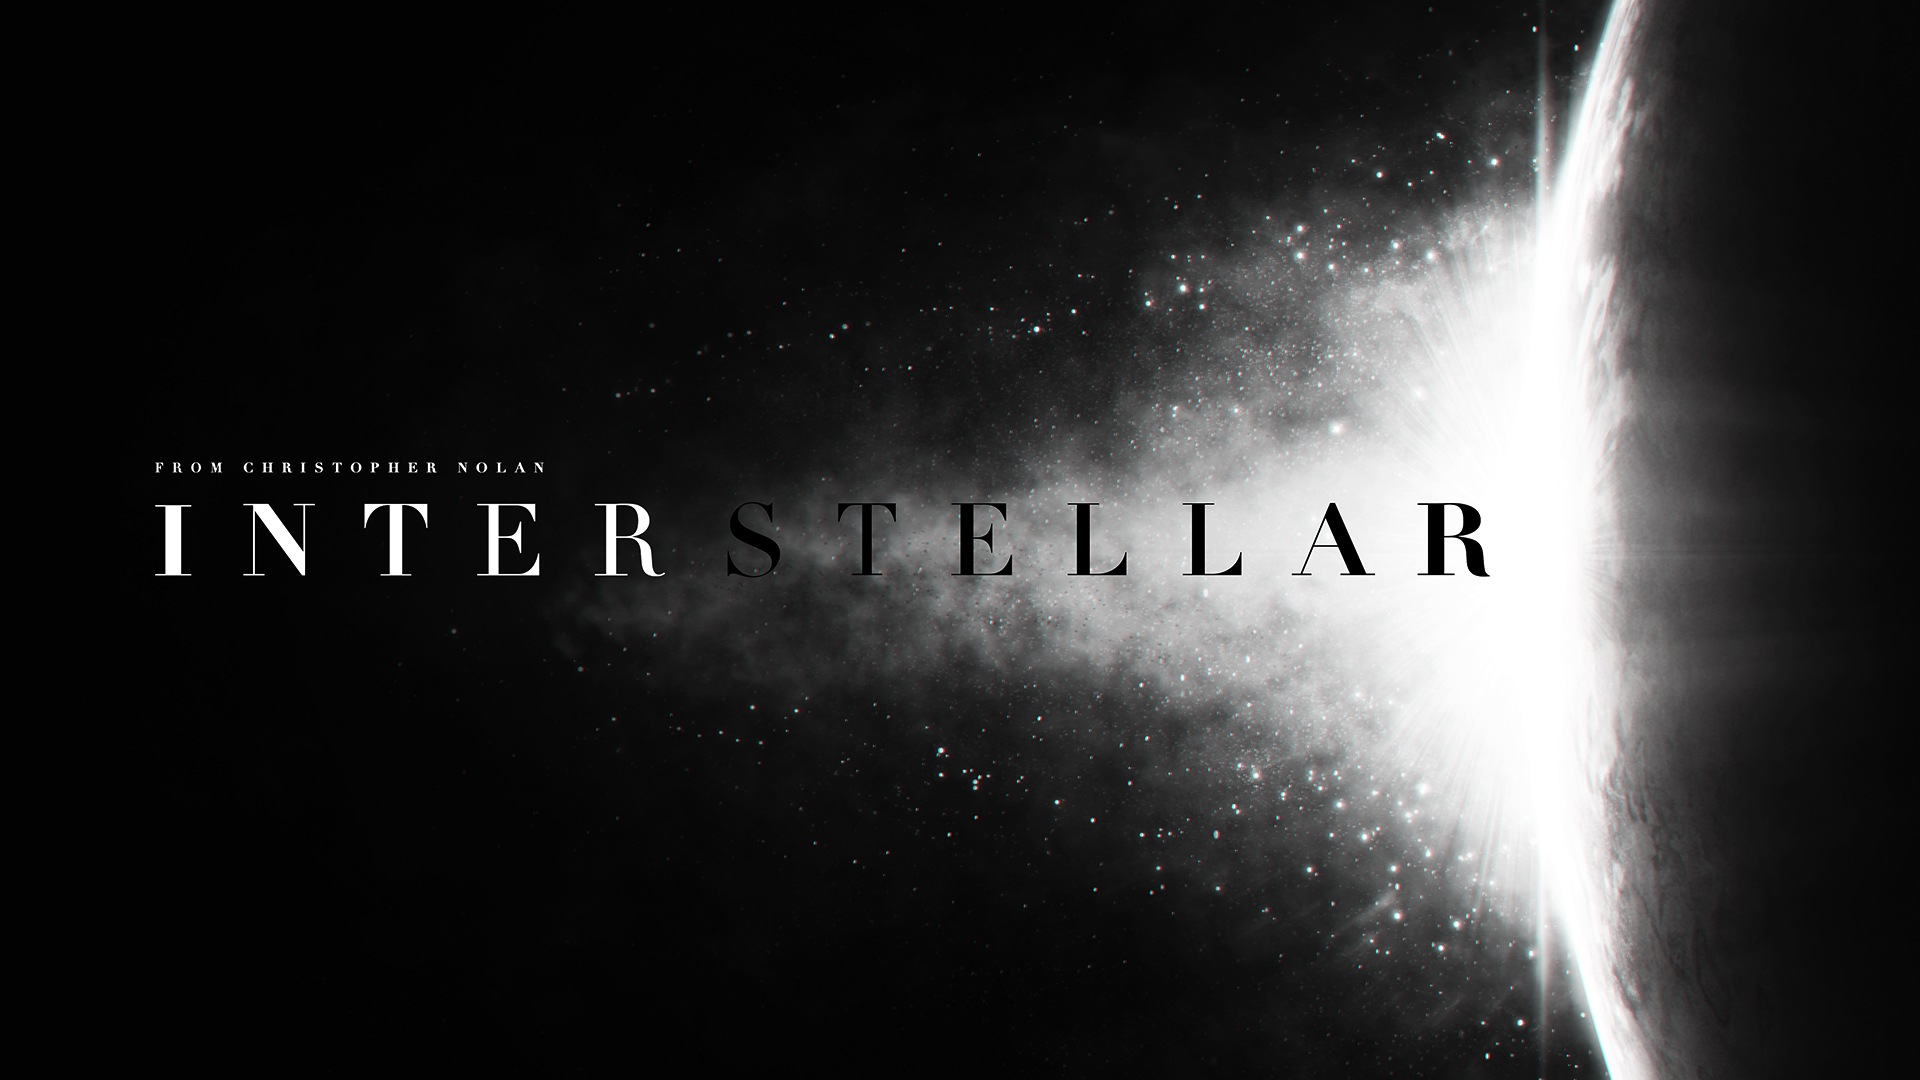 interstellar movie hd wallpaper and poster Moustache Magazine 1920x1080